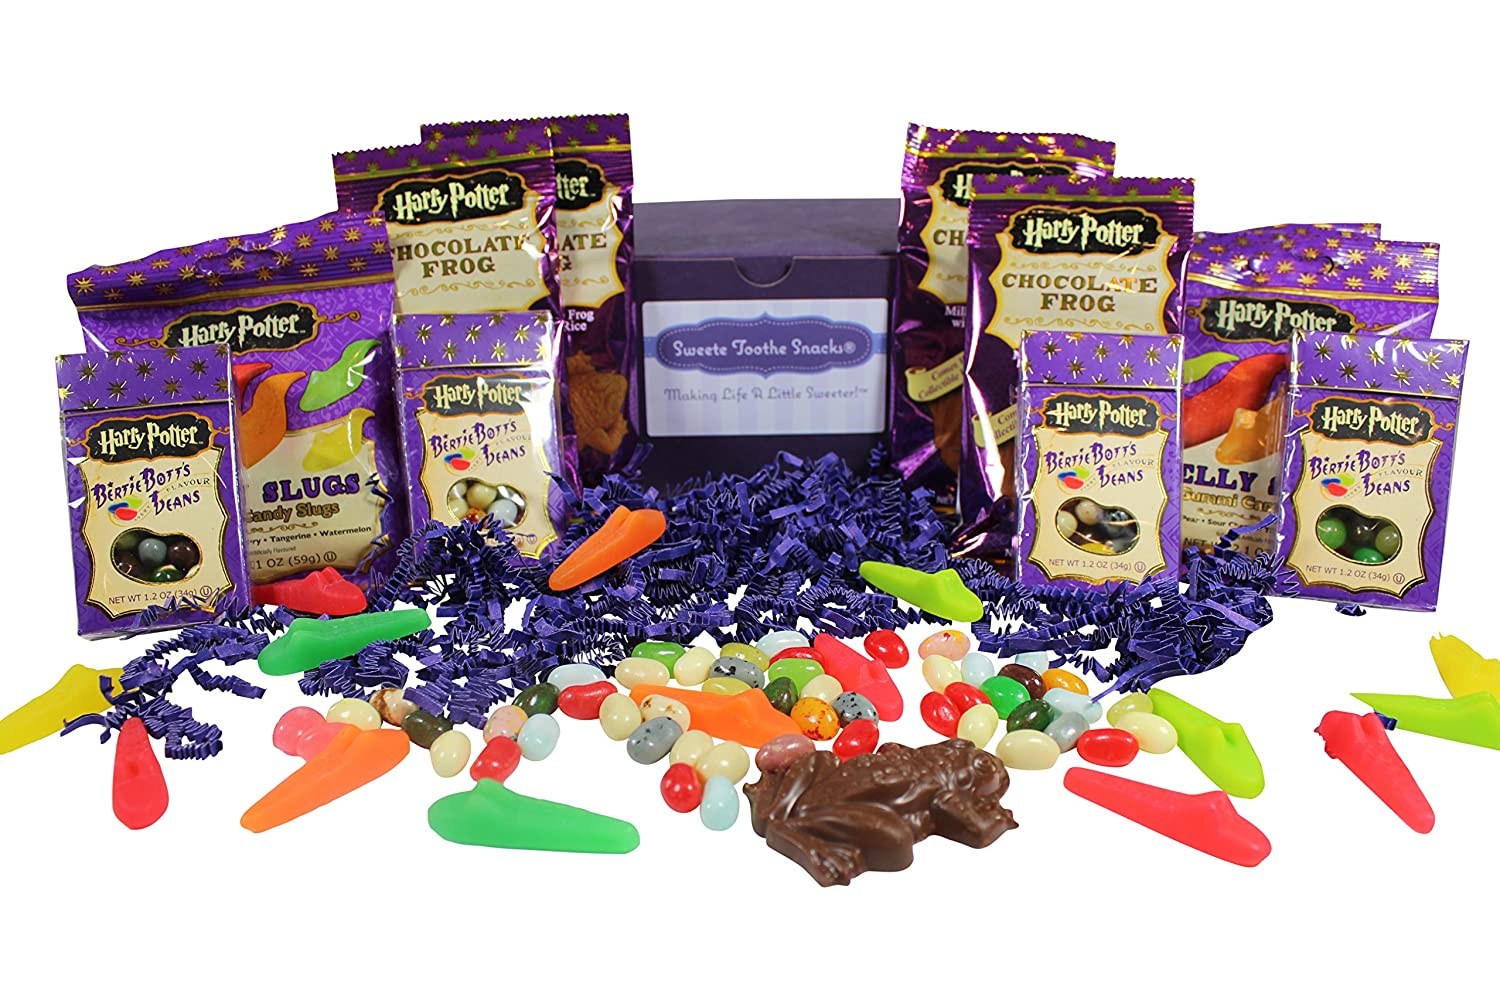 Amazon.com : Harry Potter Candy Gift Box with Chocolate Frogs ...